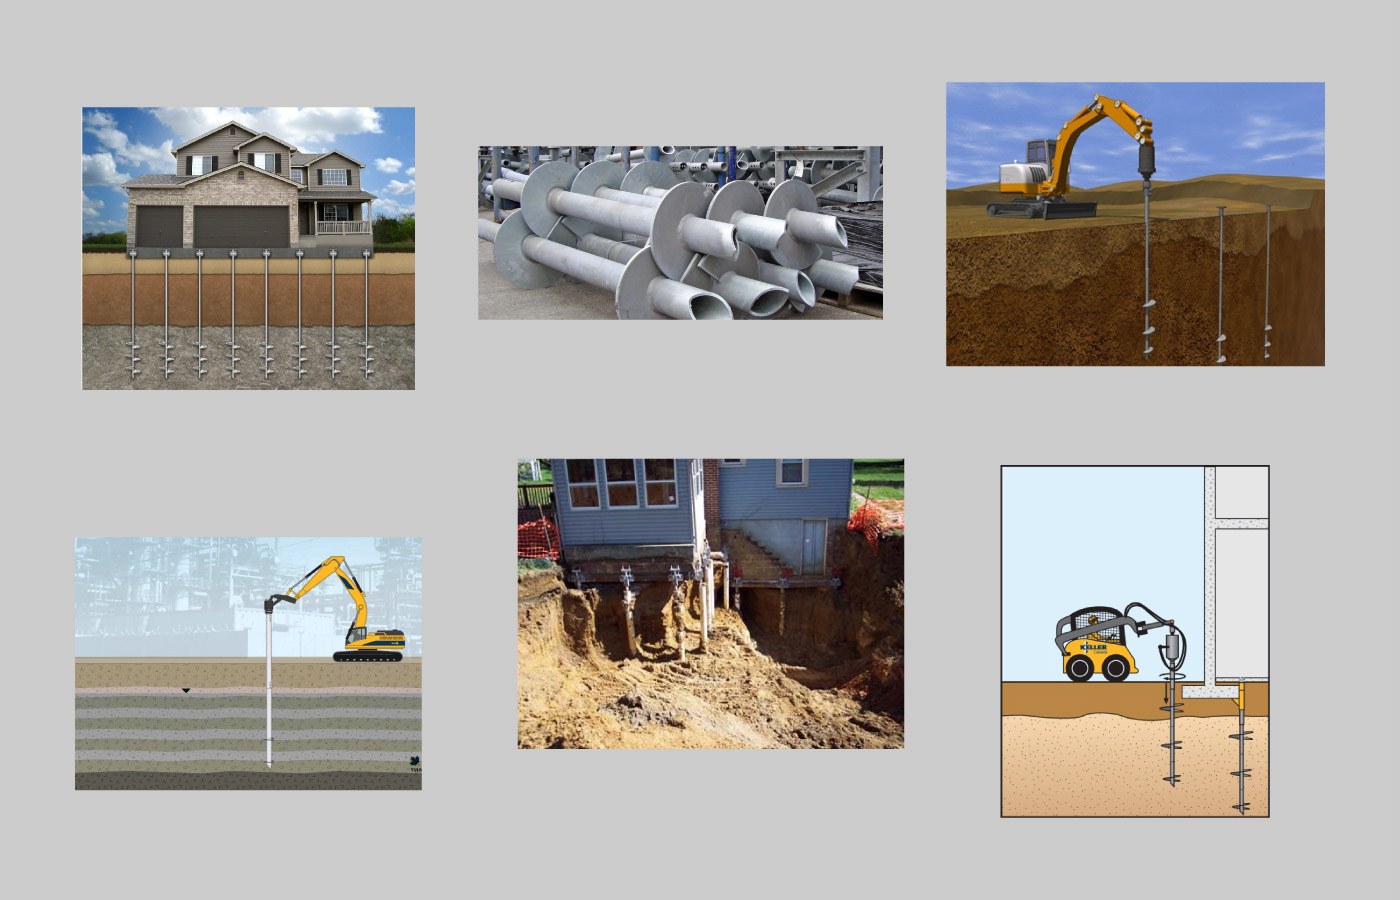 branding ,visual identity,logo,Logotype,Brand System,Helical Piles,Brand collaterals,Engineering ,construction,Civil Construction